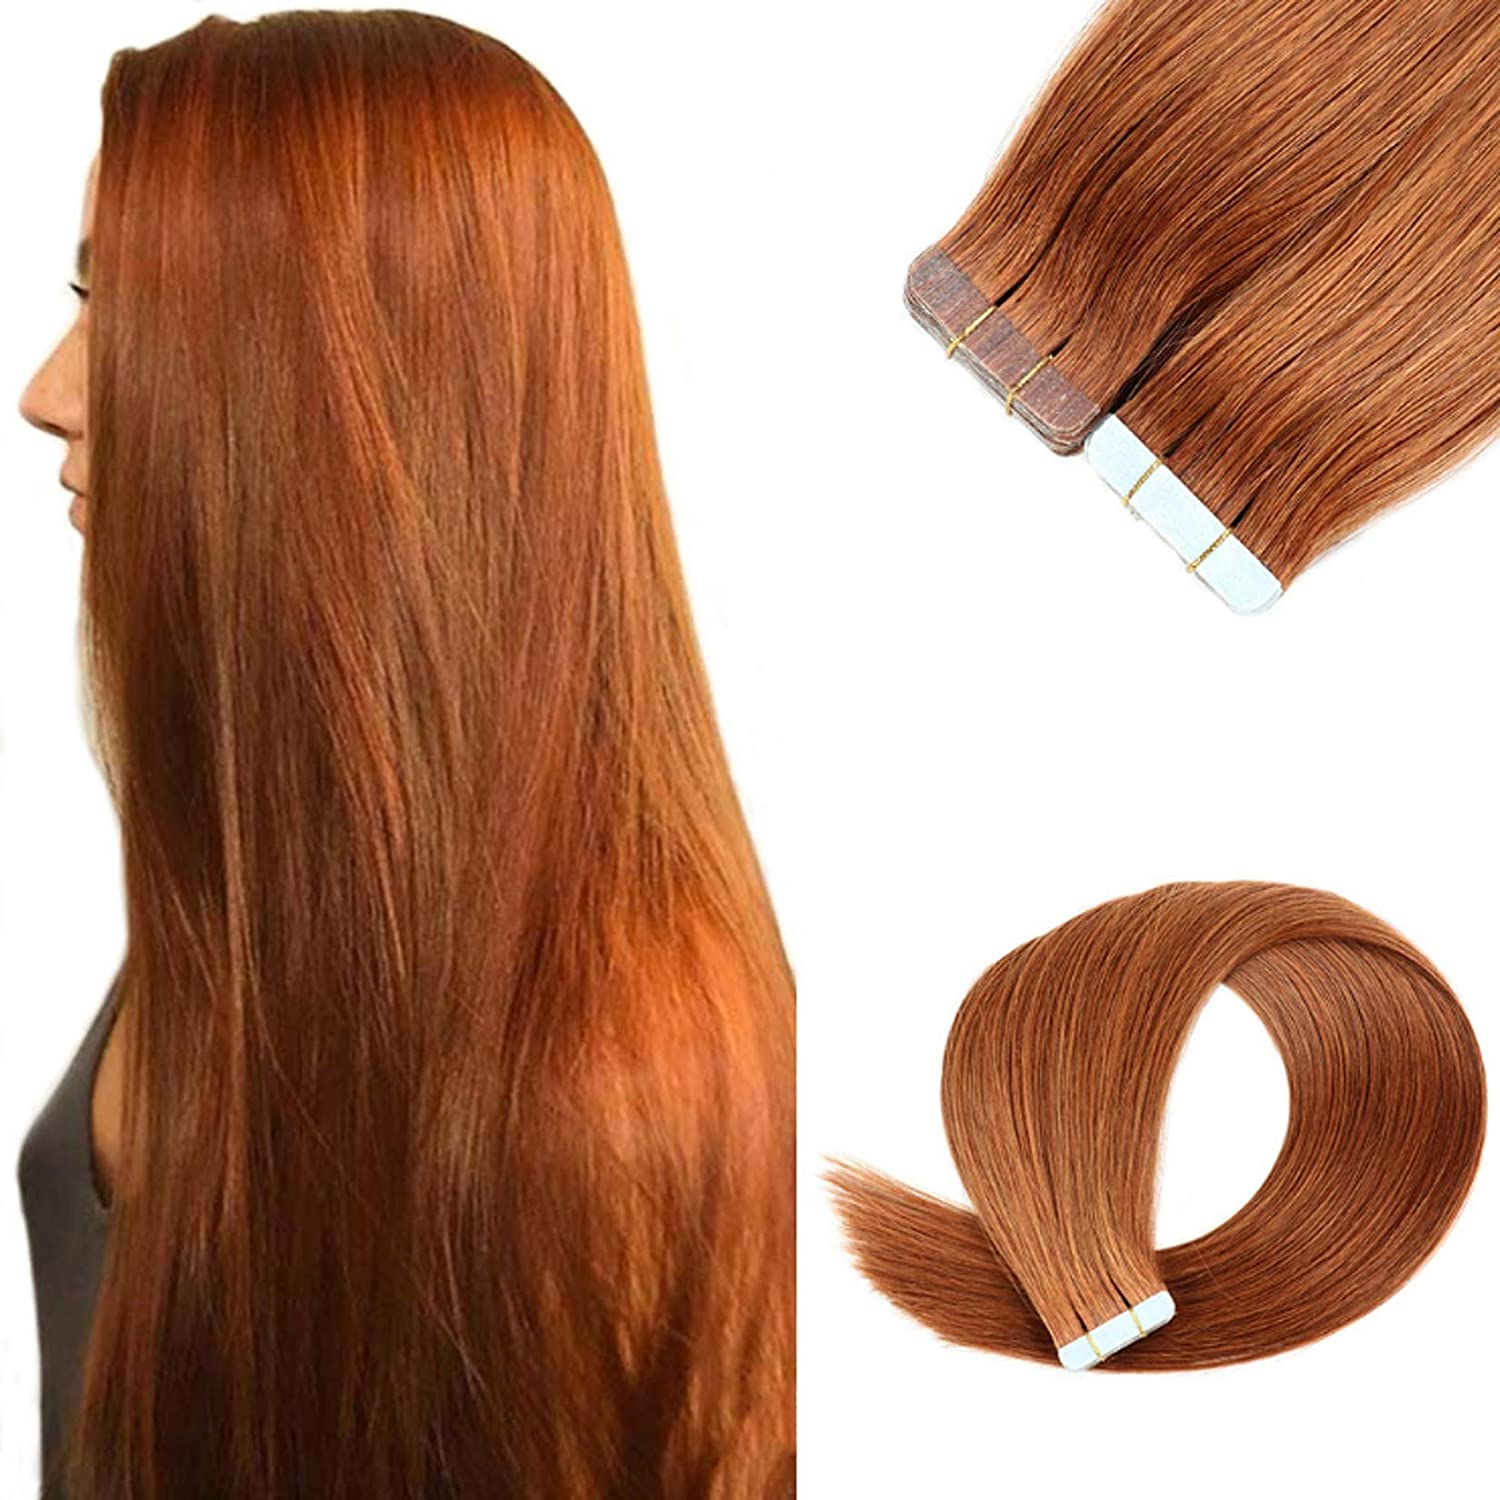 16-24 Inch Seamless Remy shipfree Tape in Natural Extensions 5% OFF Human P Hair